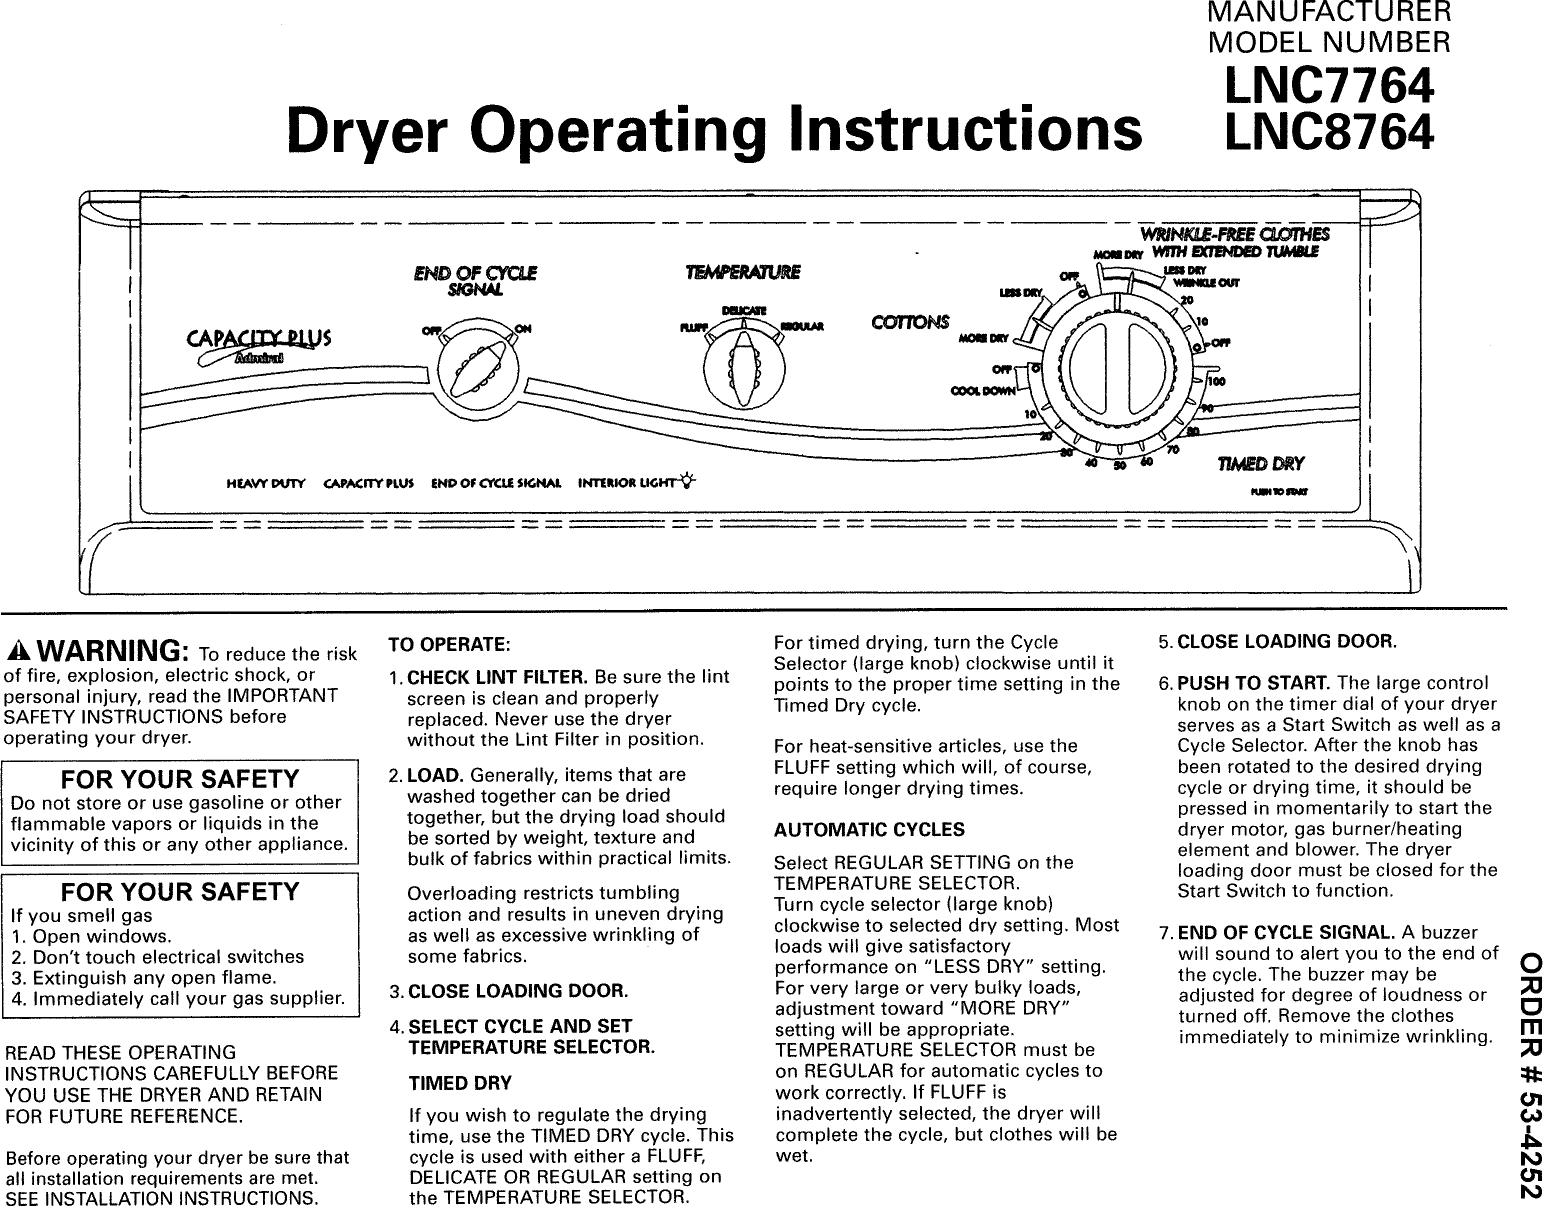 Manual Admiral Land Rover D90 O Demeter Wiring Diagram Array Lnc7764a71 User Dryer Manuals And Guides L0905177 Rh Usermanual Wiki